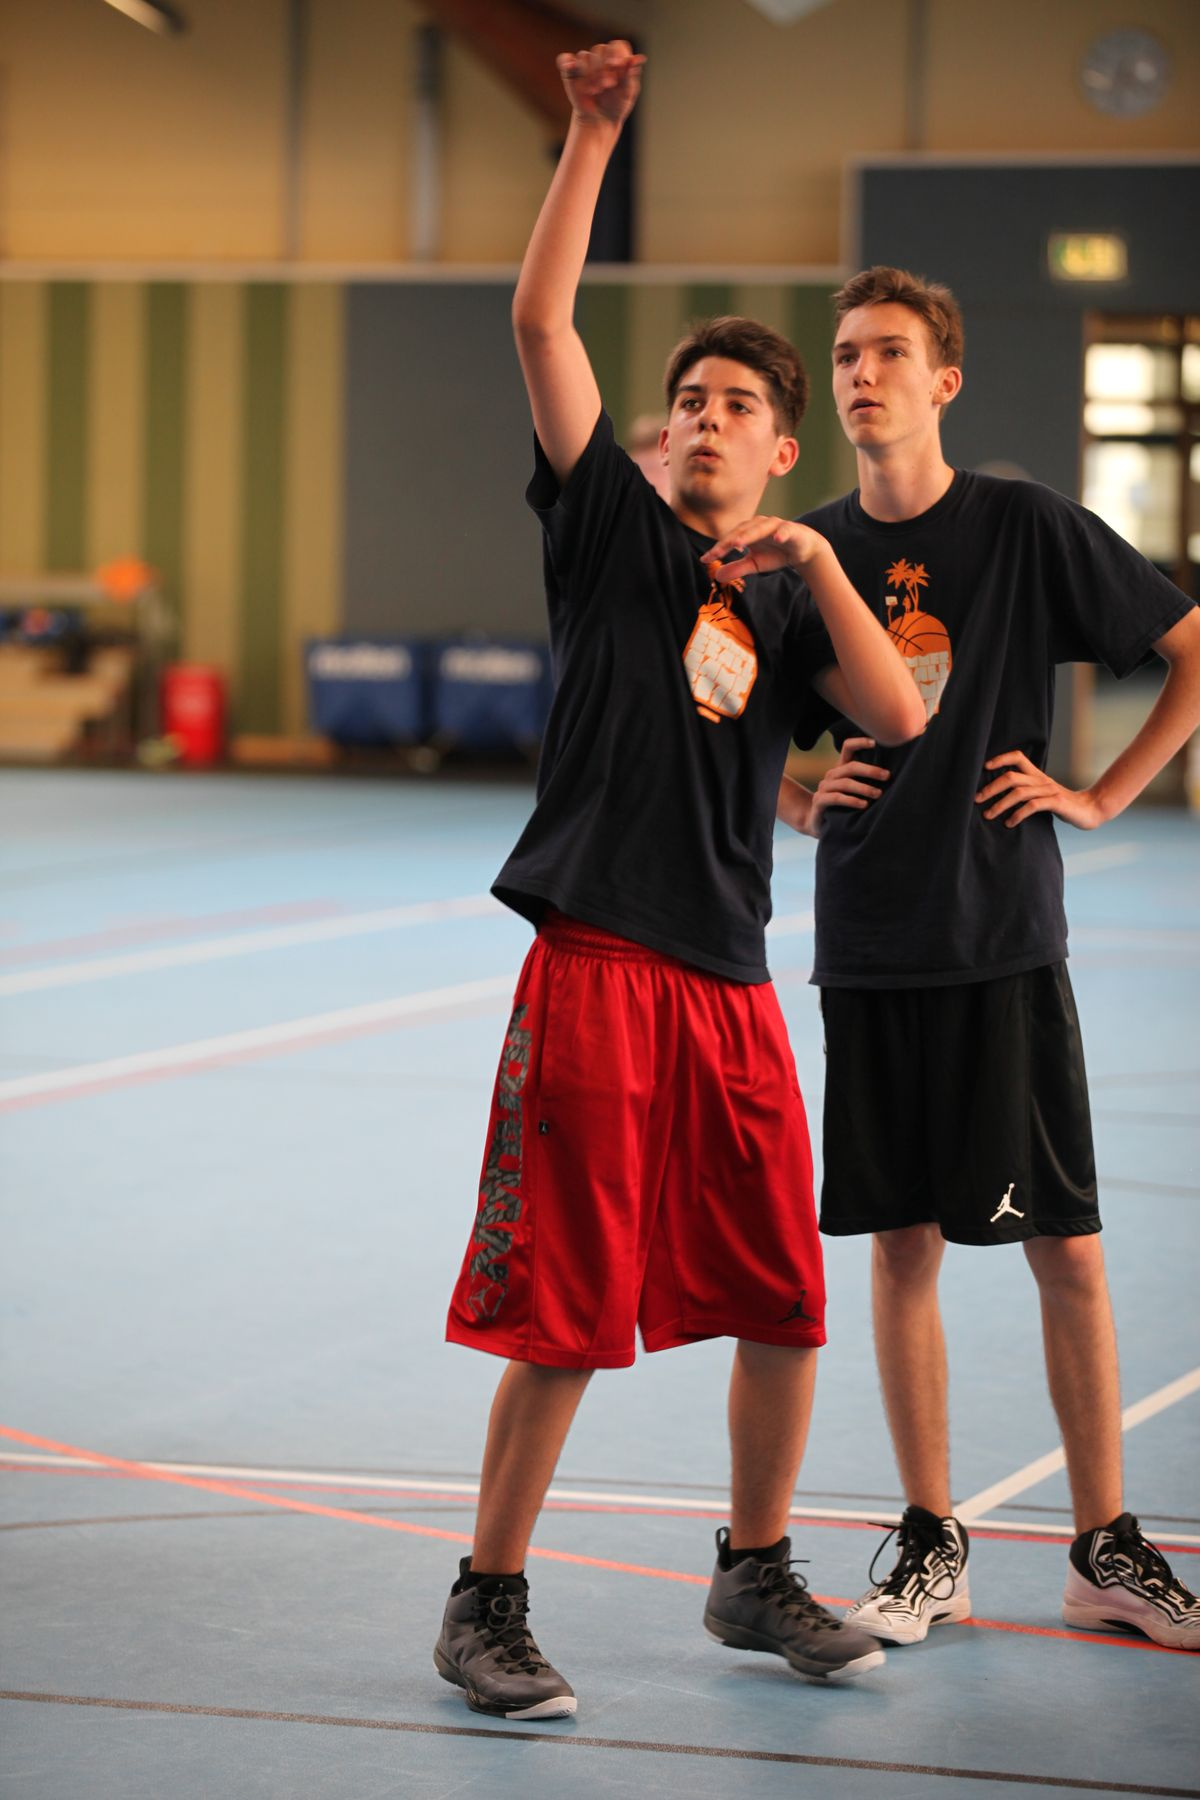 Sommer-Bball-Camp 2014_Tag 1 (46)